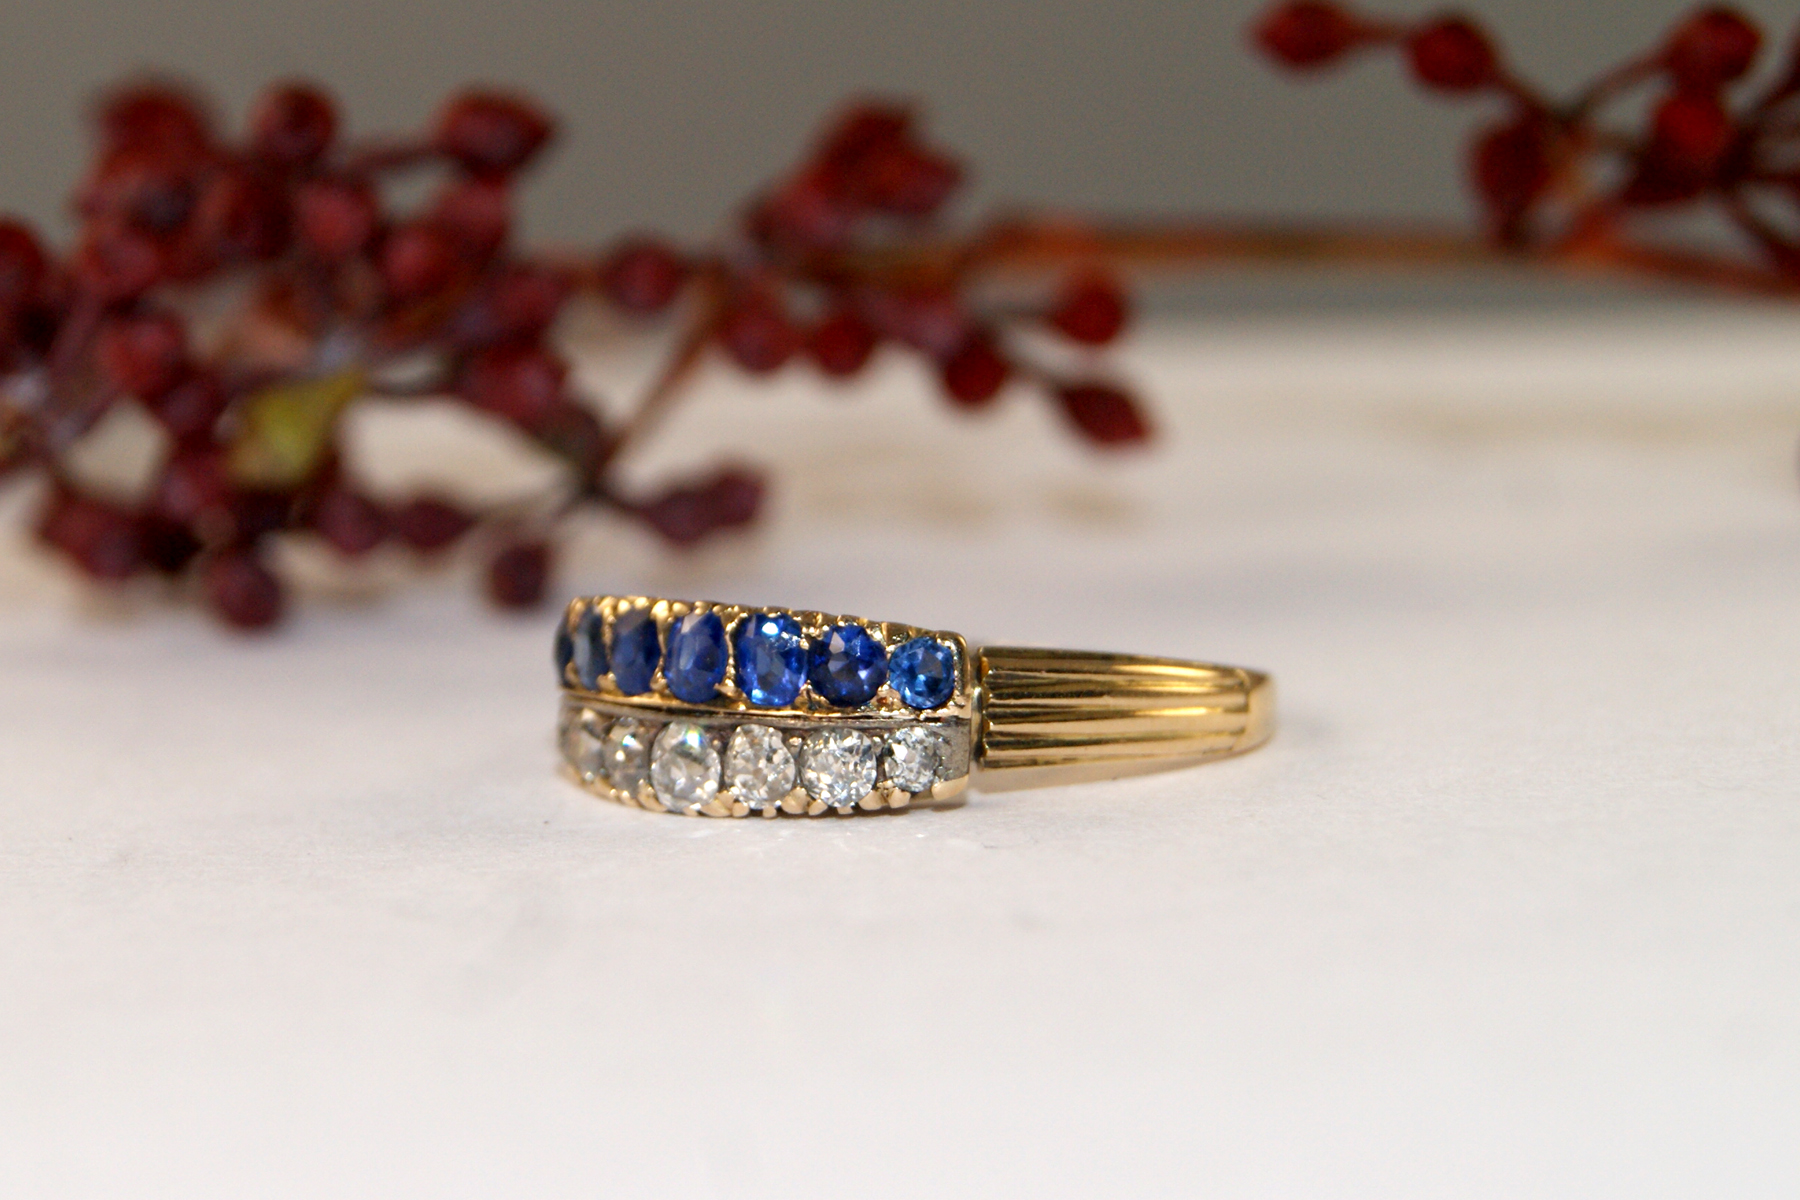 side maniamania solitaire devotion whitegold rings sapphire white devotionsolitairering midnight gold bluesapphire engagement blue darker products ring dark